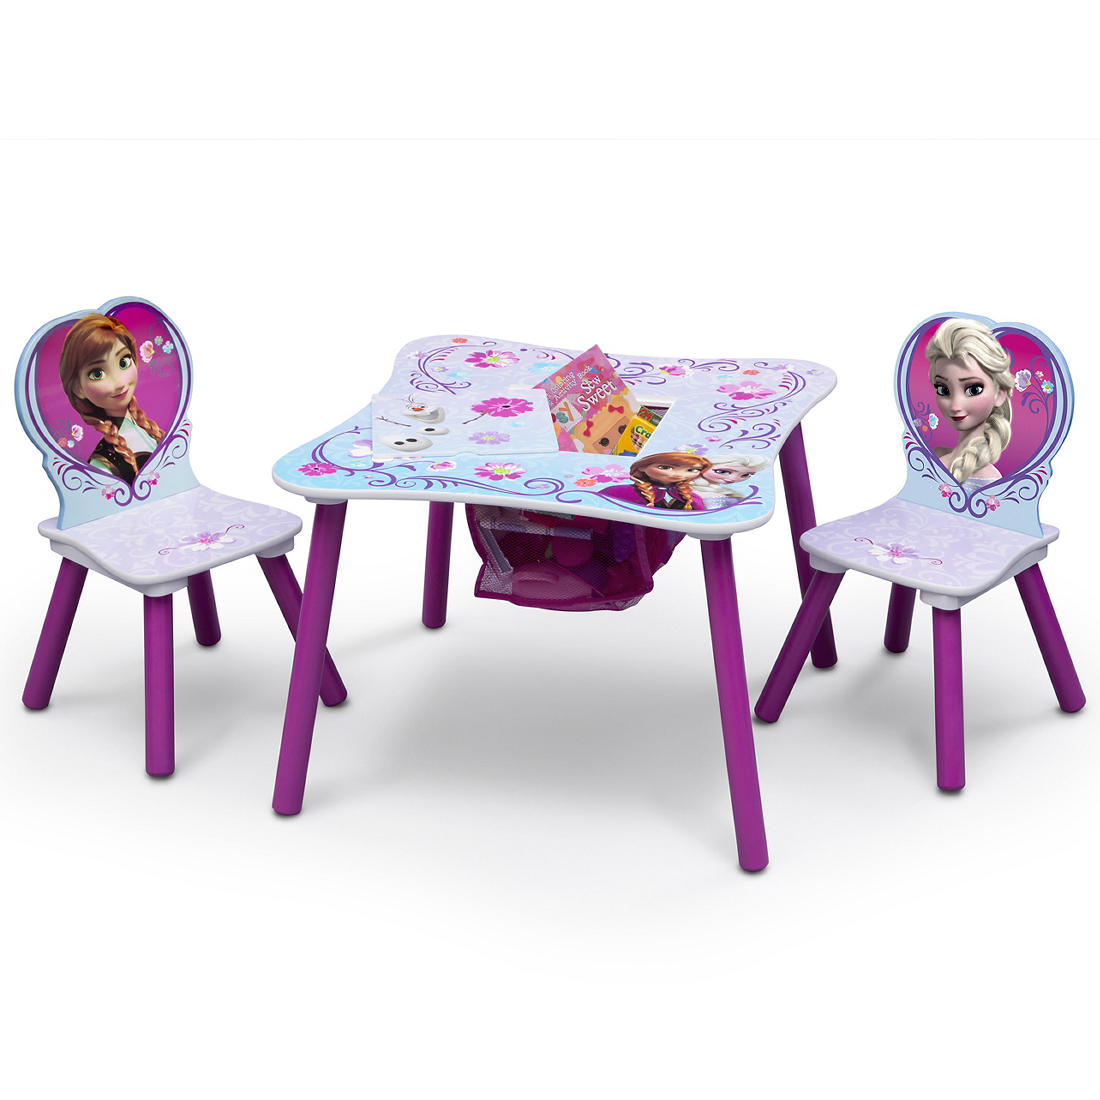 Pleasant Delta Children Disney Frozen 3 Pc Table And Chair Set With Storage Pdpeps Interior Chair Design Pdpepsorg